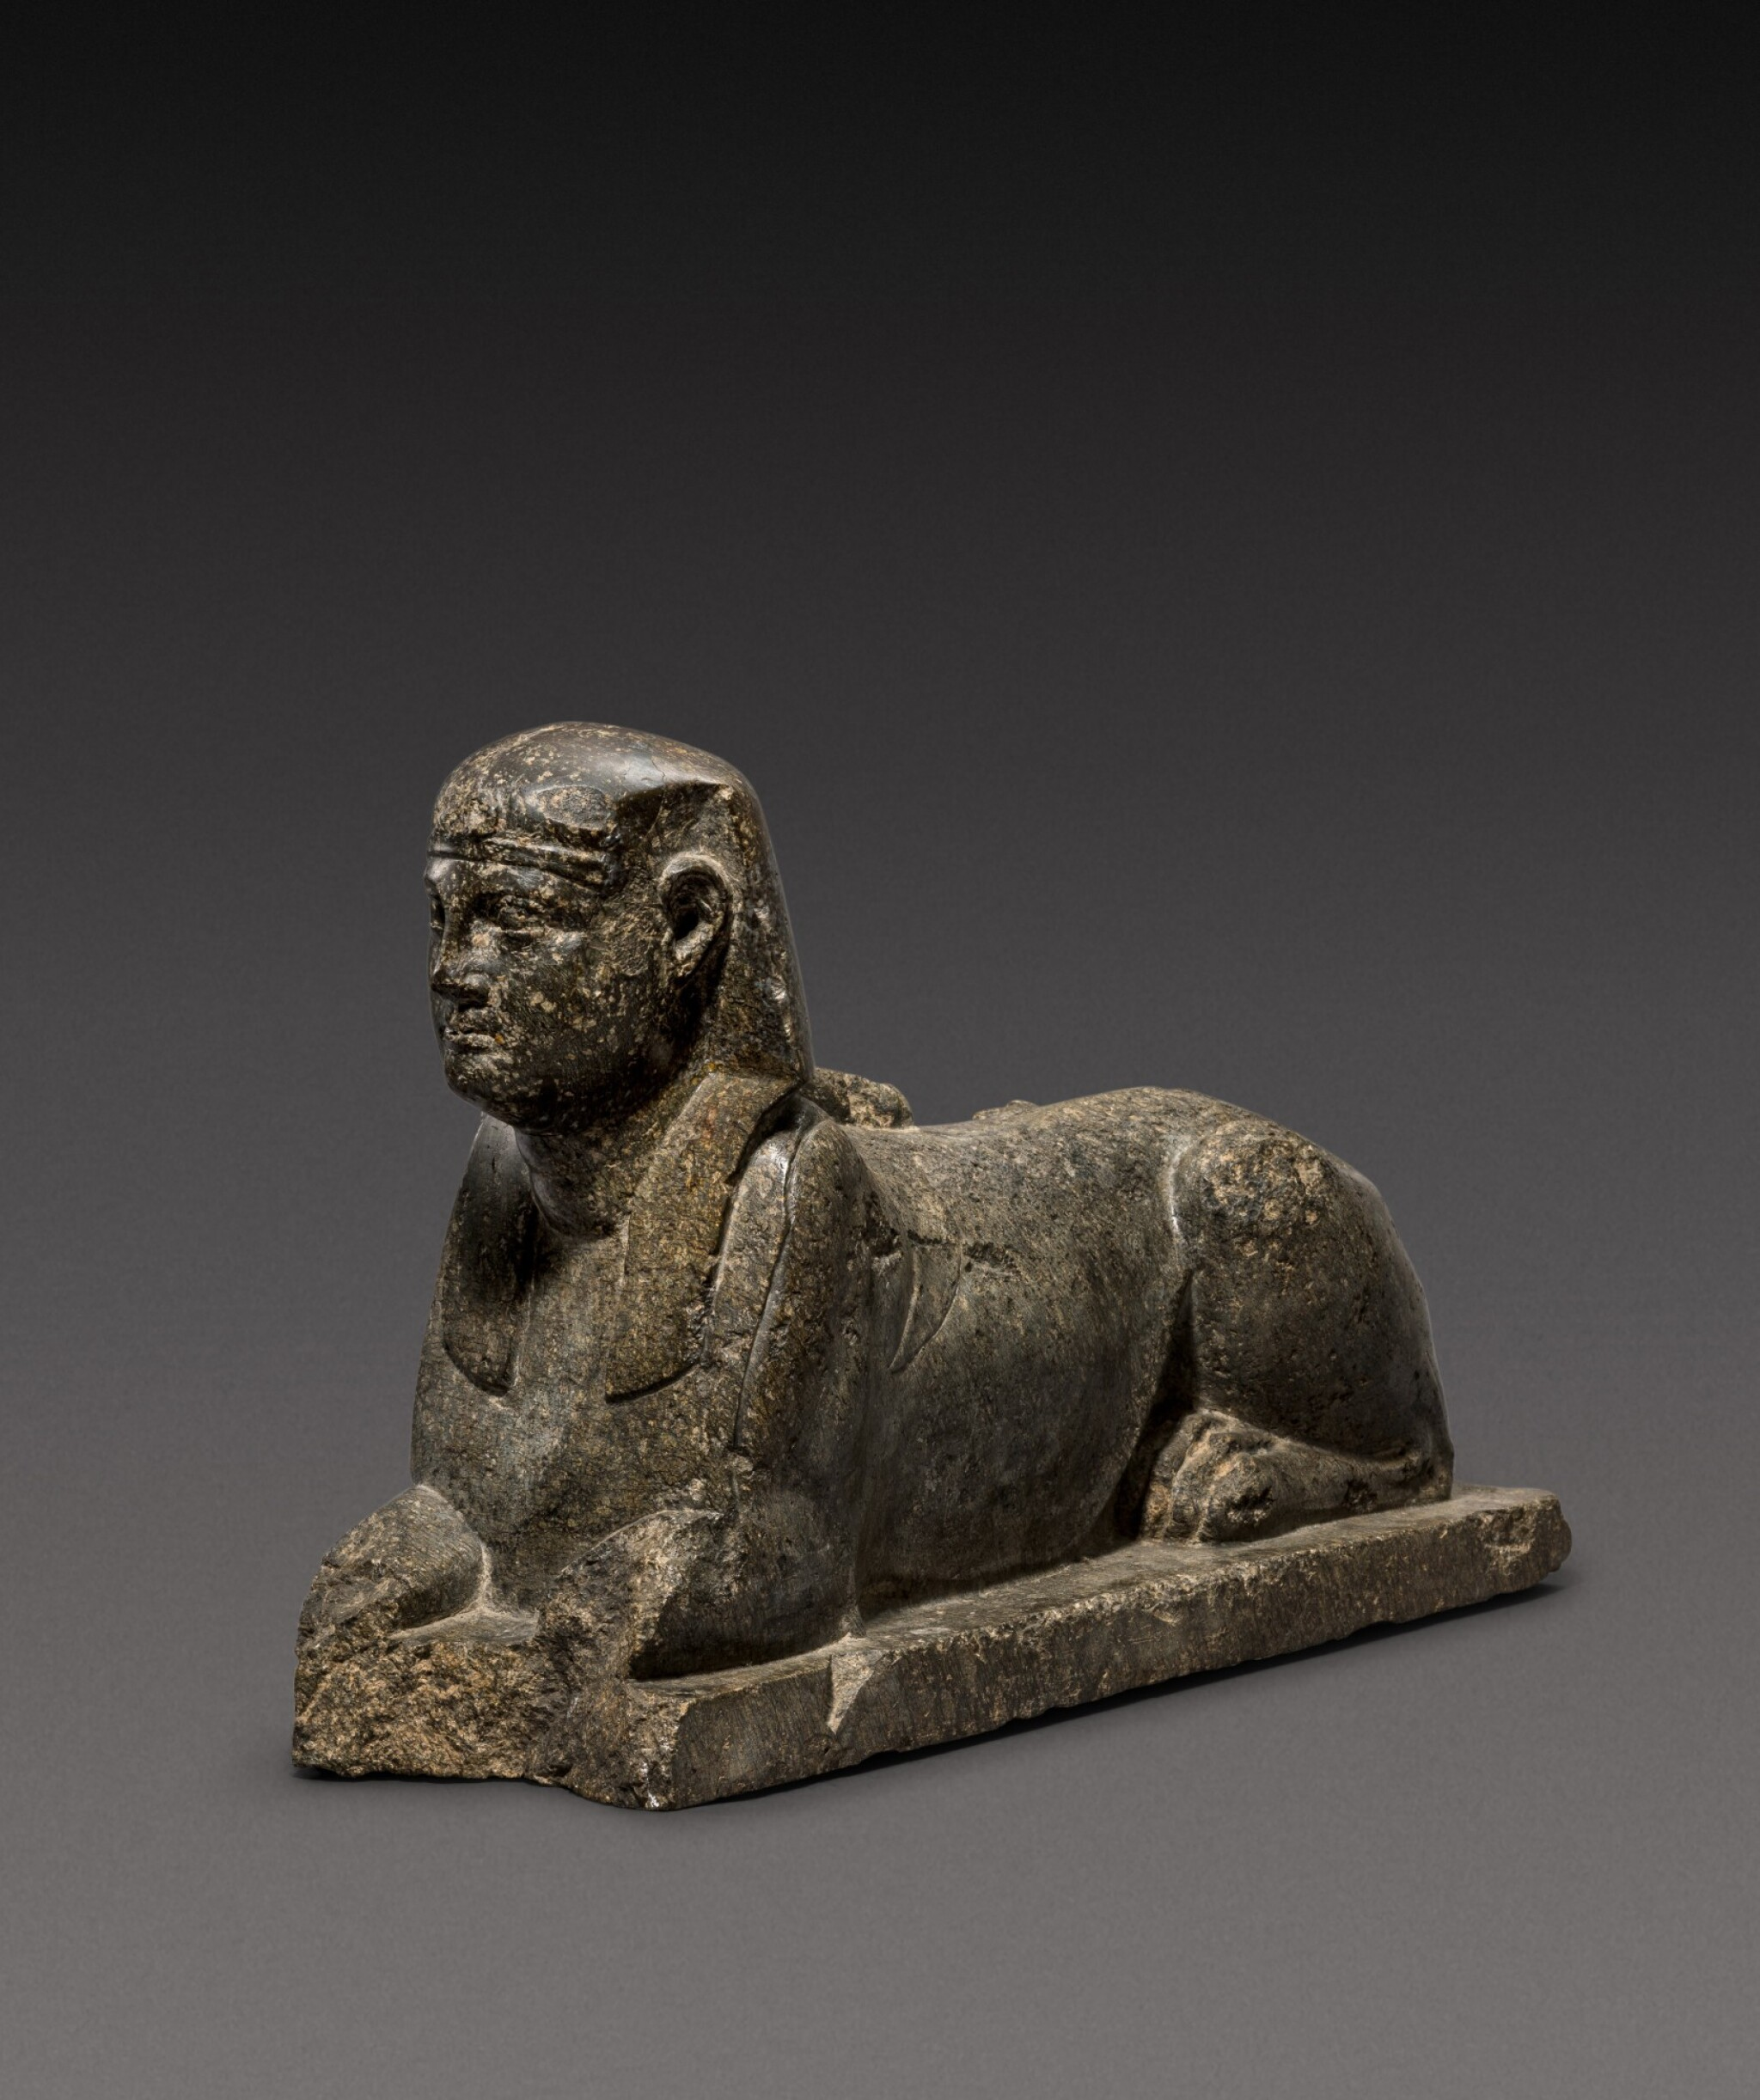 View 1 of Lot 44. An Egyptian Figure of a Sphinx, Ptolemaic Period, 305-30 B.C..